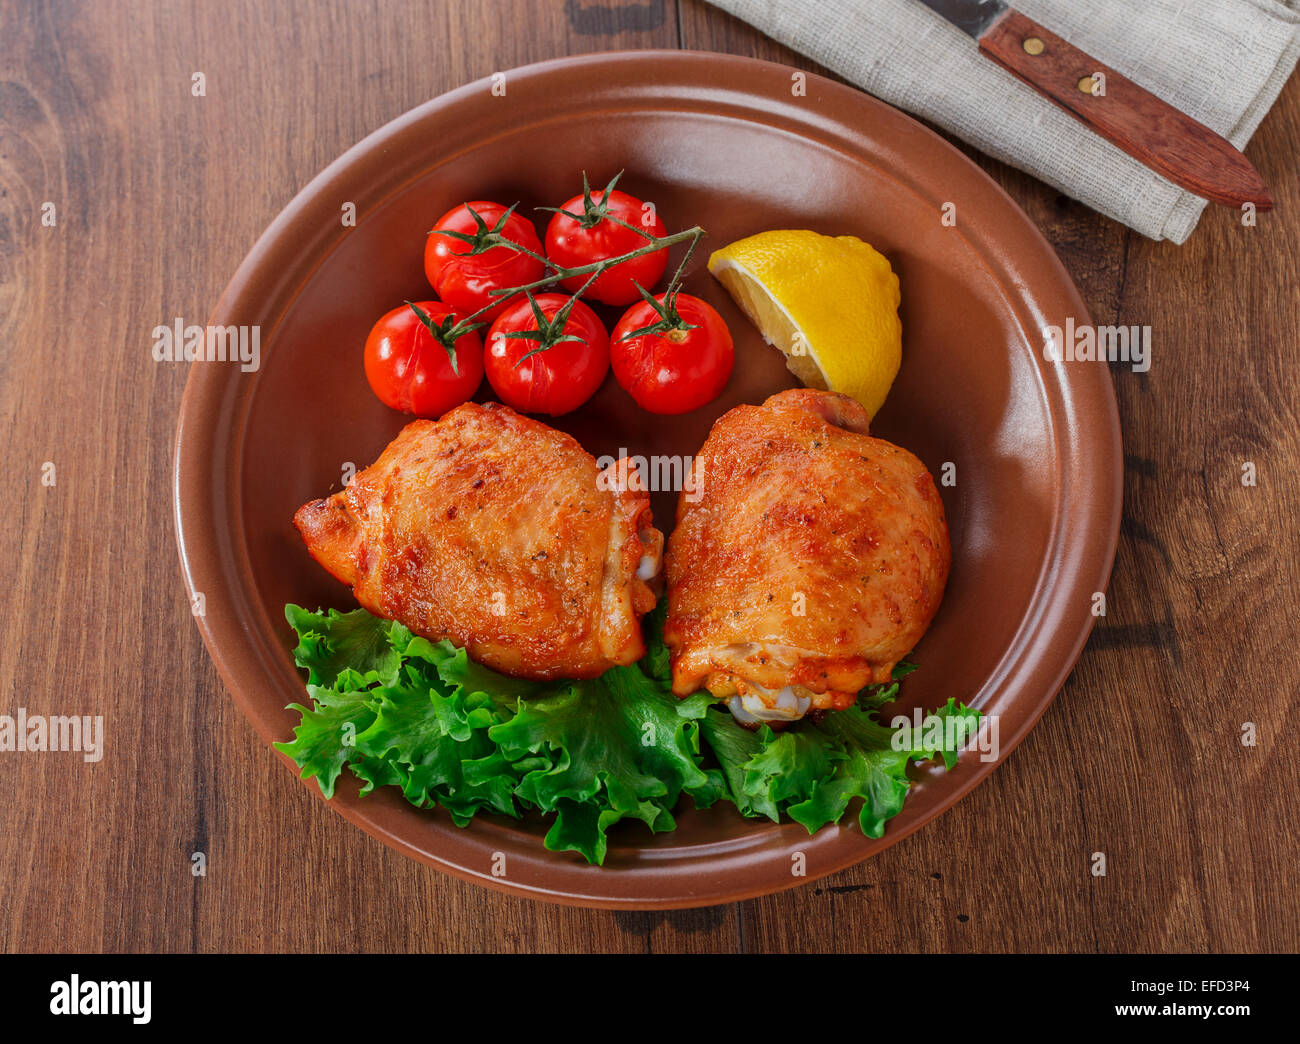 baked chicken thigh with cherry tomatoes and lemon - Stock Image